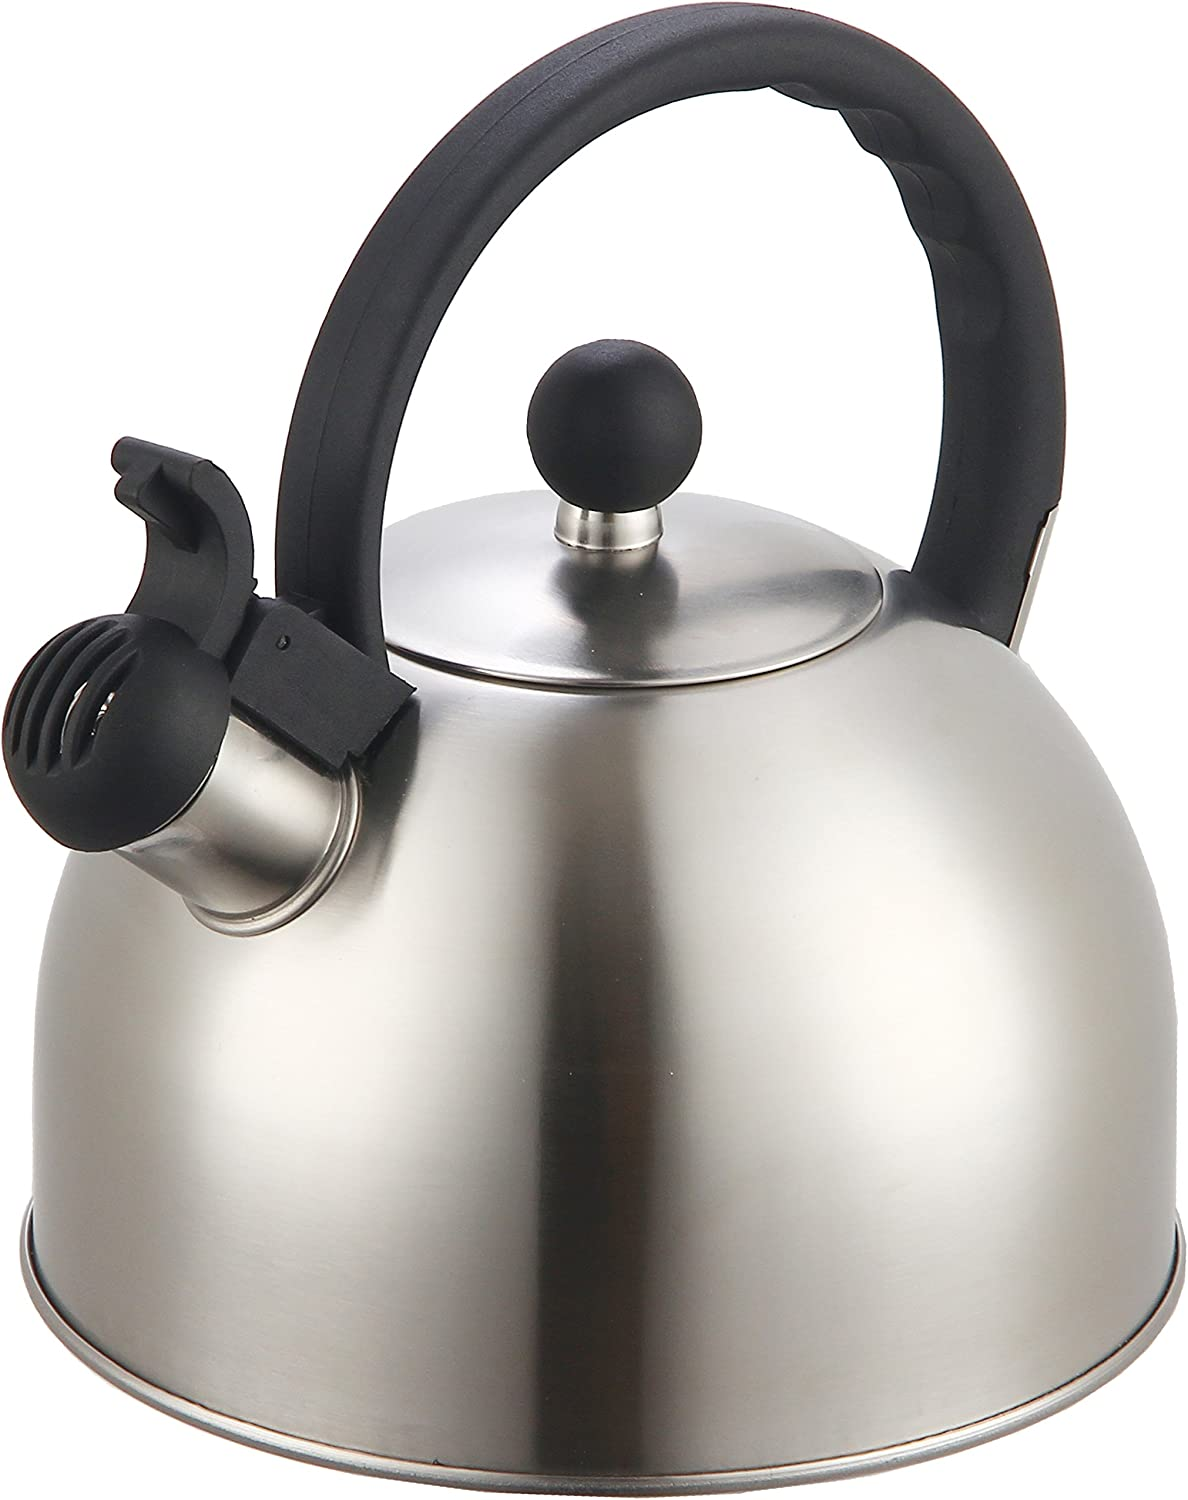 Modern Stainless Steel Whistling Tea Pot for Stovetop with Cool Grip Ergonomic Handle Zanzer 2.5 Liter Whistling Tea Kettle